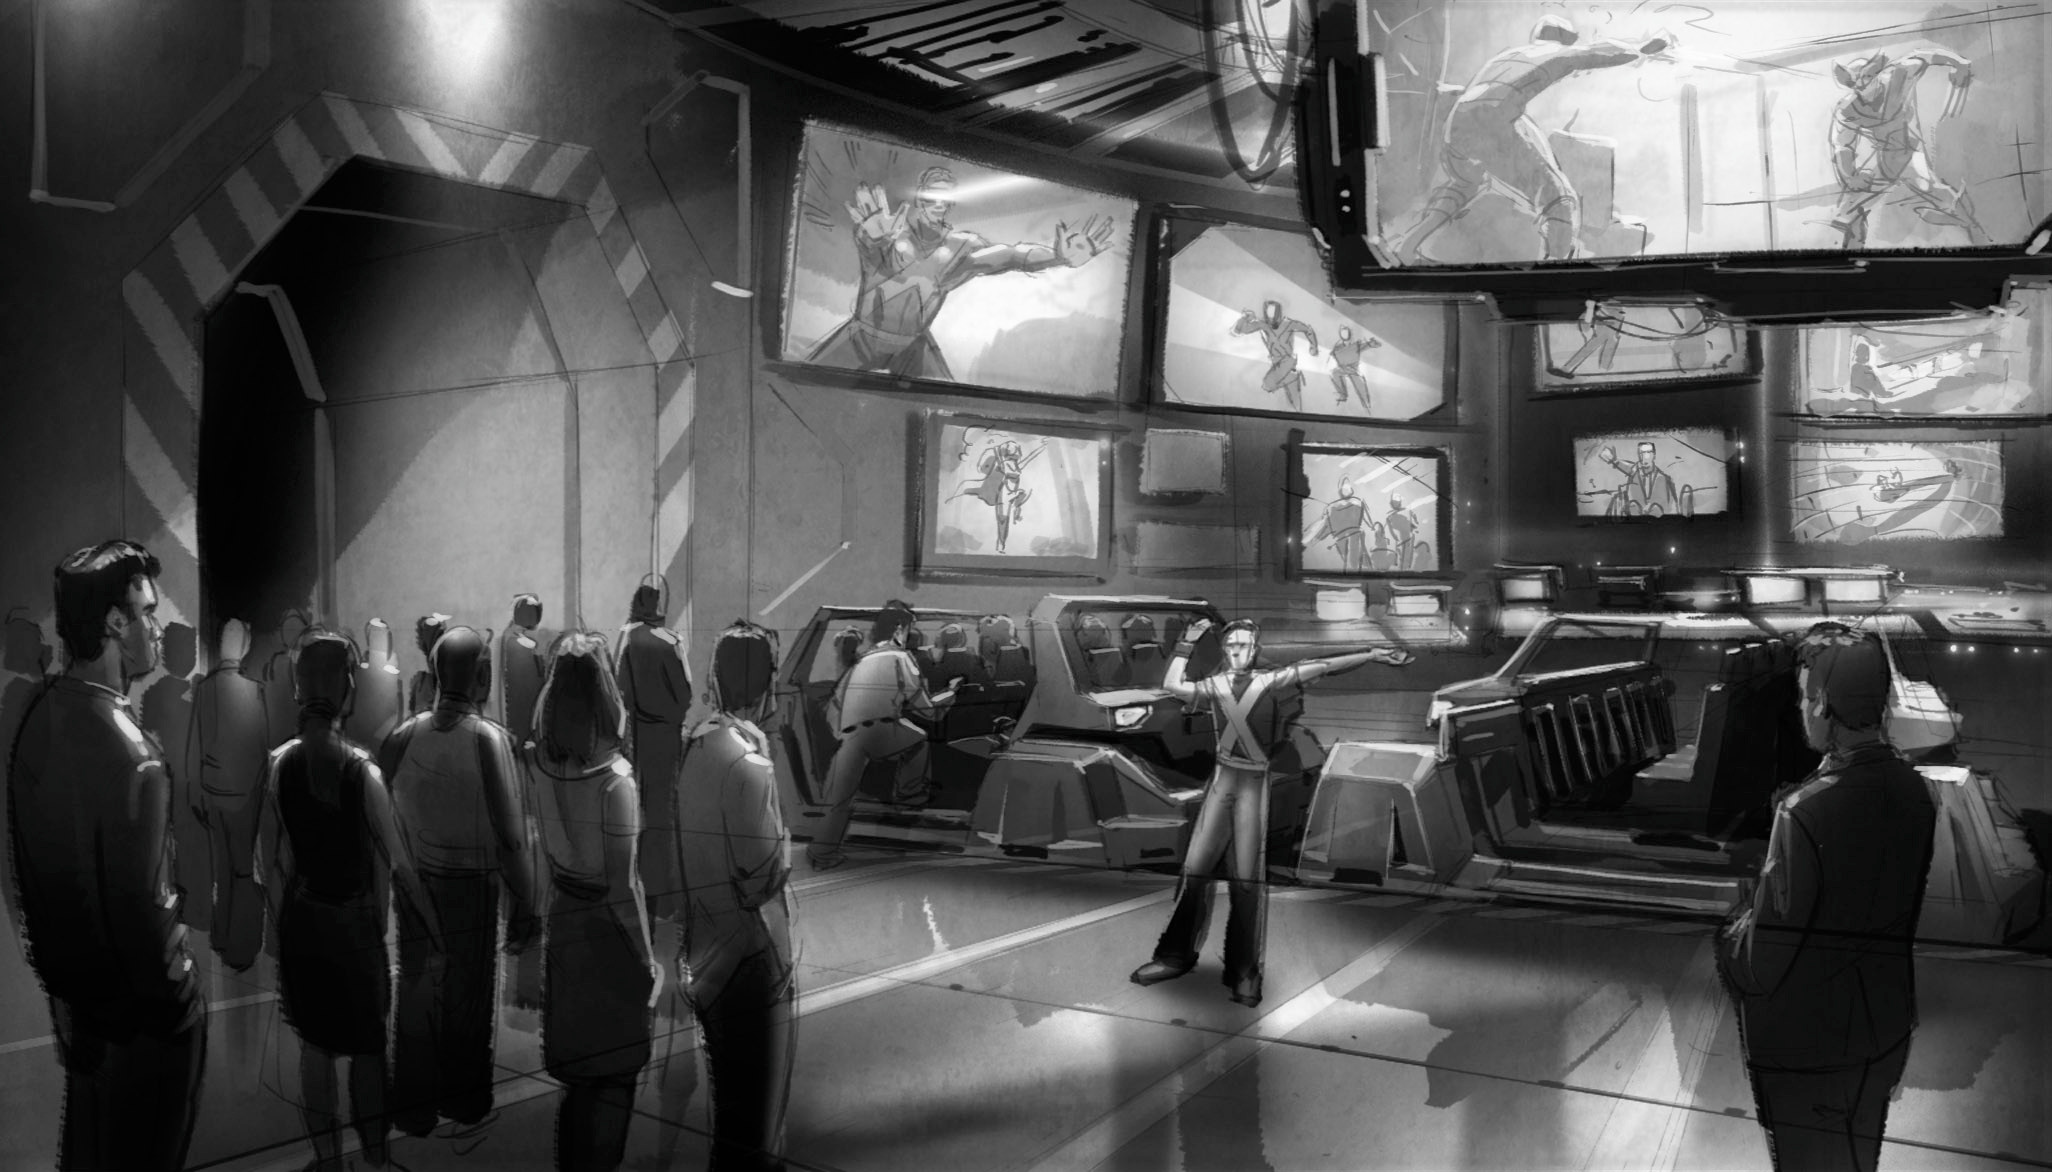 As alarms ring, we are evacuated to a security station where we are loaded onto security vehicles as monitors show the X-Men engaging with Magneto's mutant villains elsewhere in the mansion.